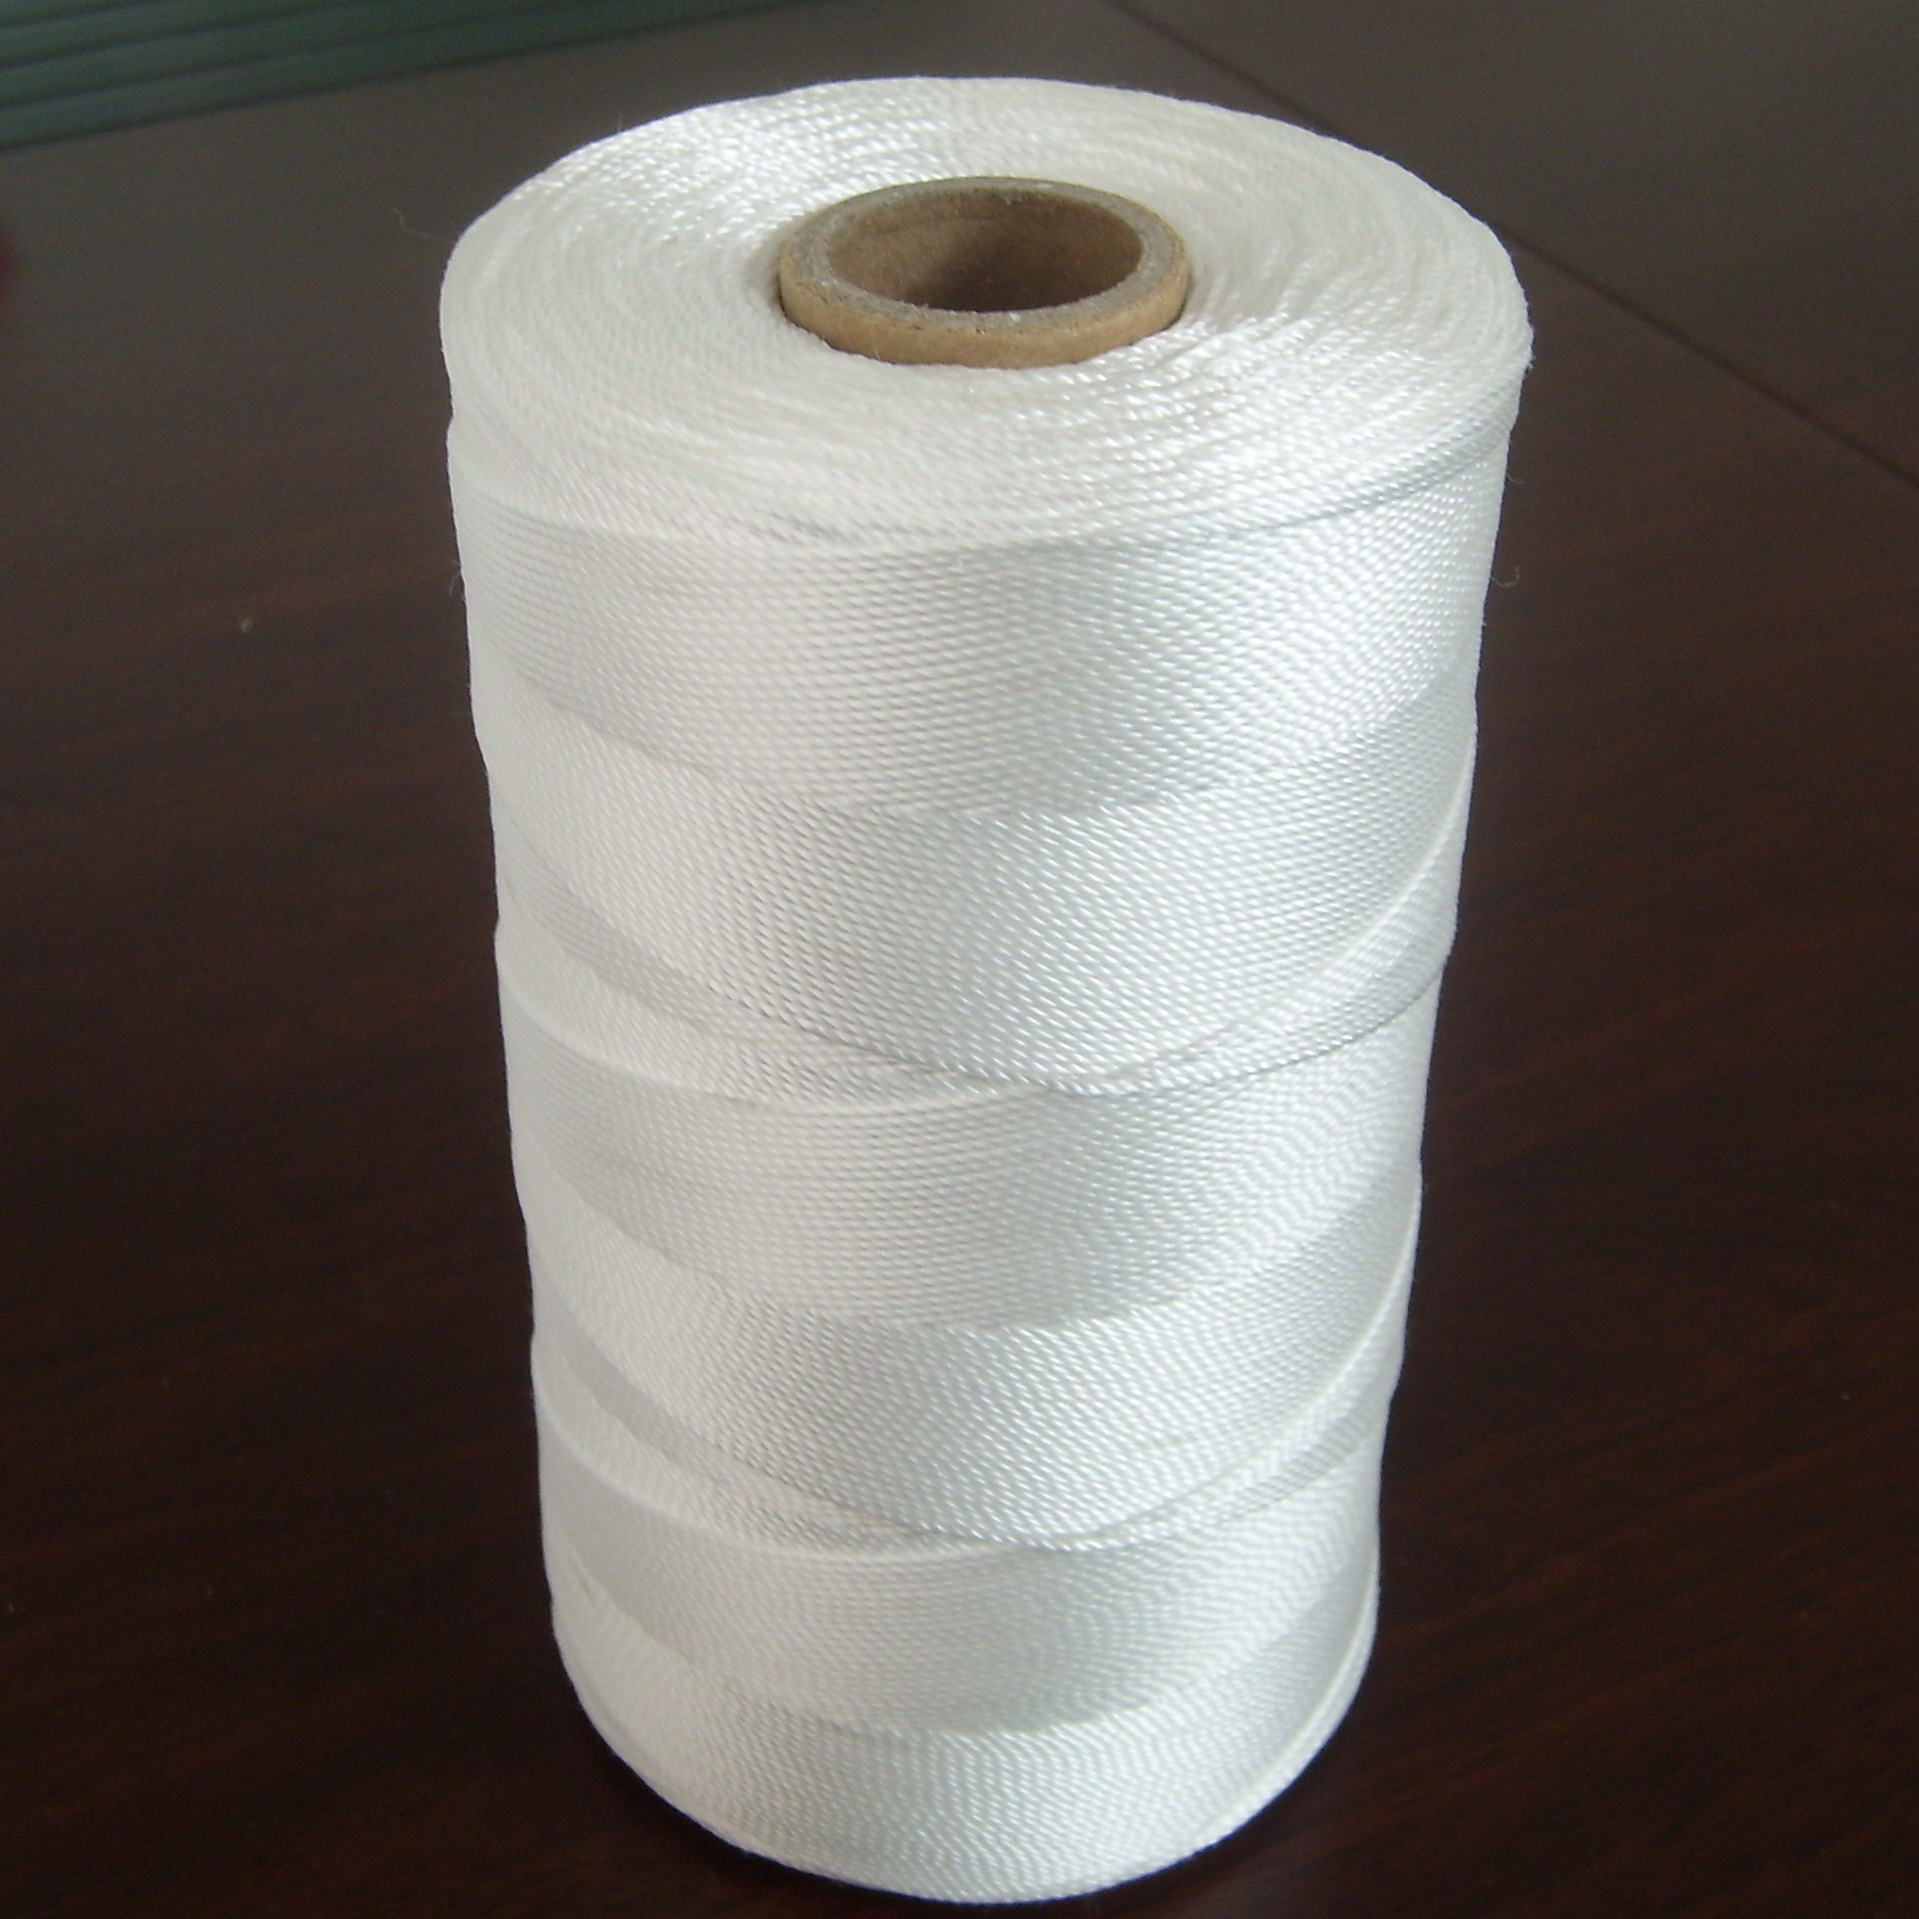 nylon fishing twine pp twine of polypropylene material